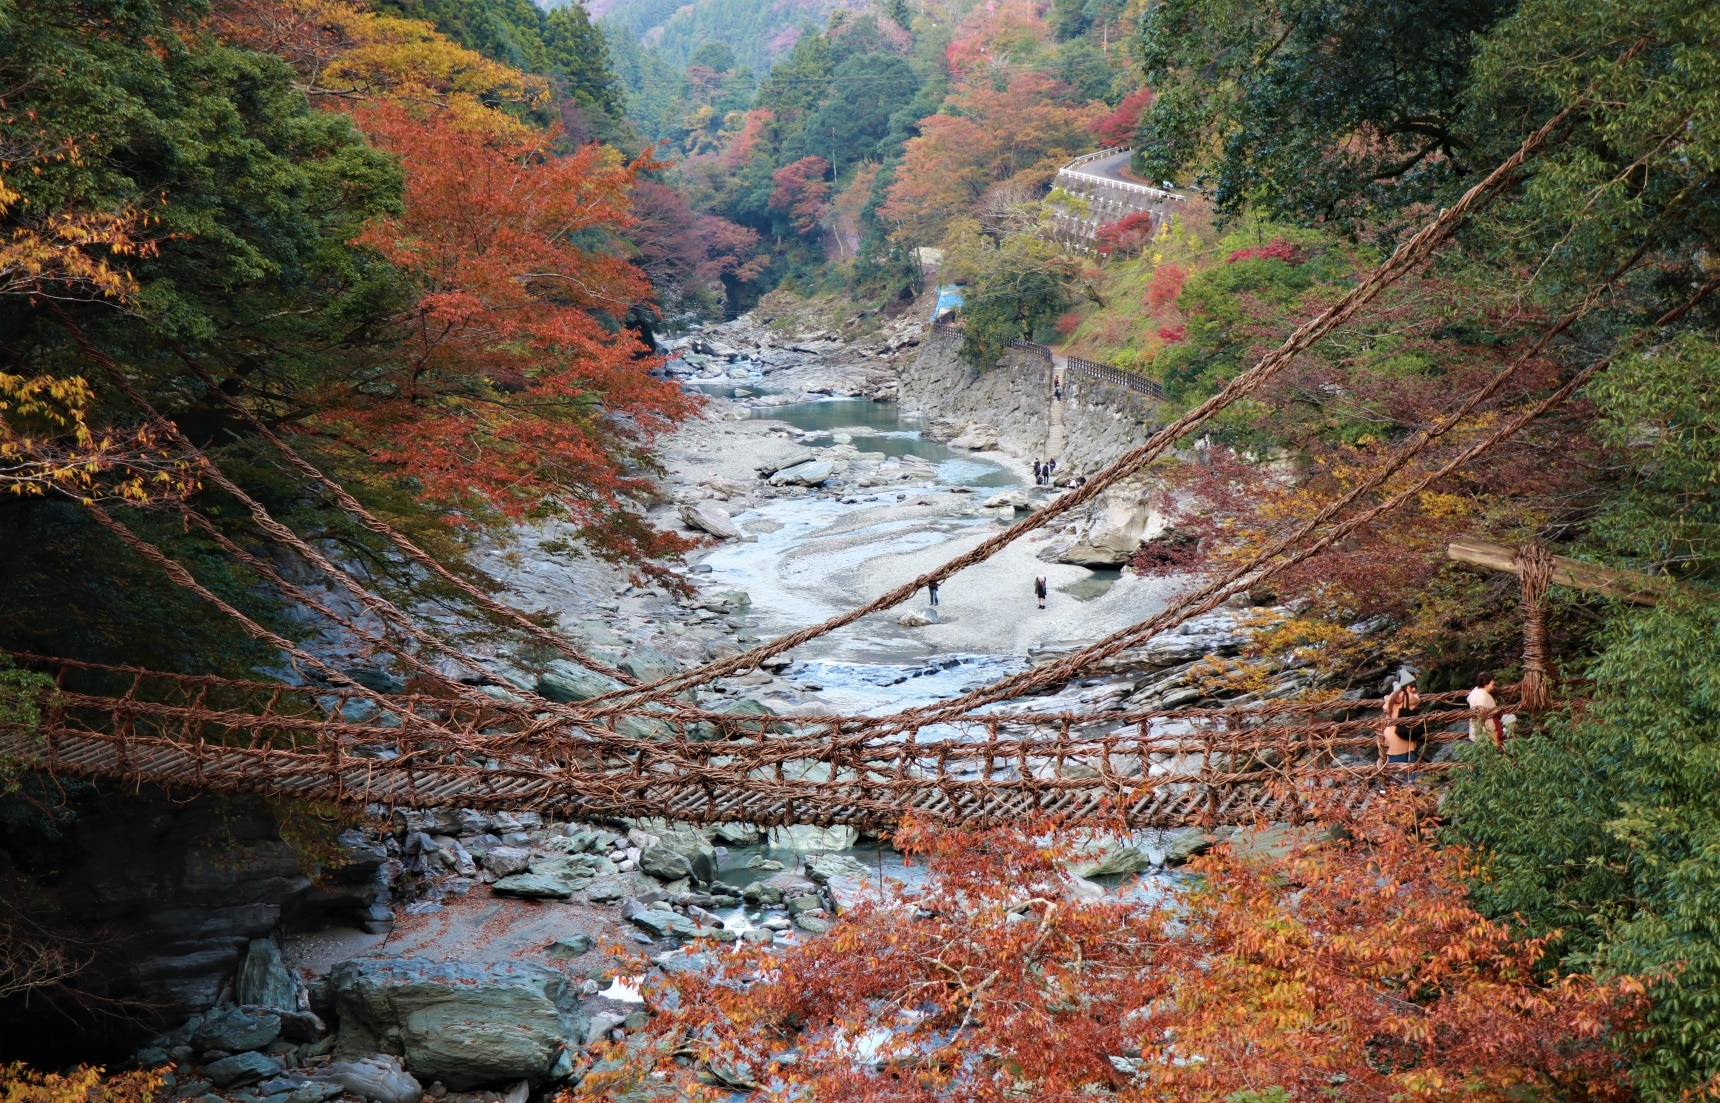 Take a Walk on the Wild Side in Tokushima